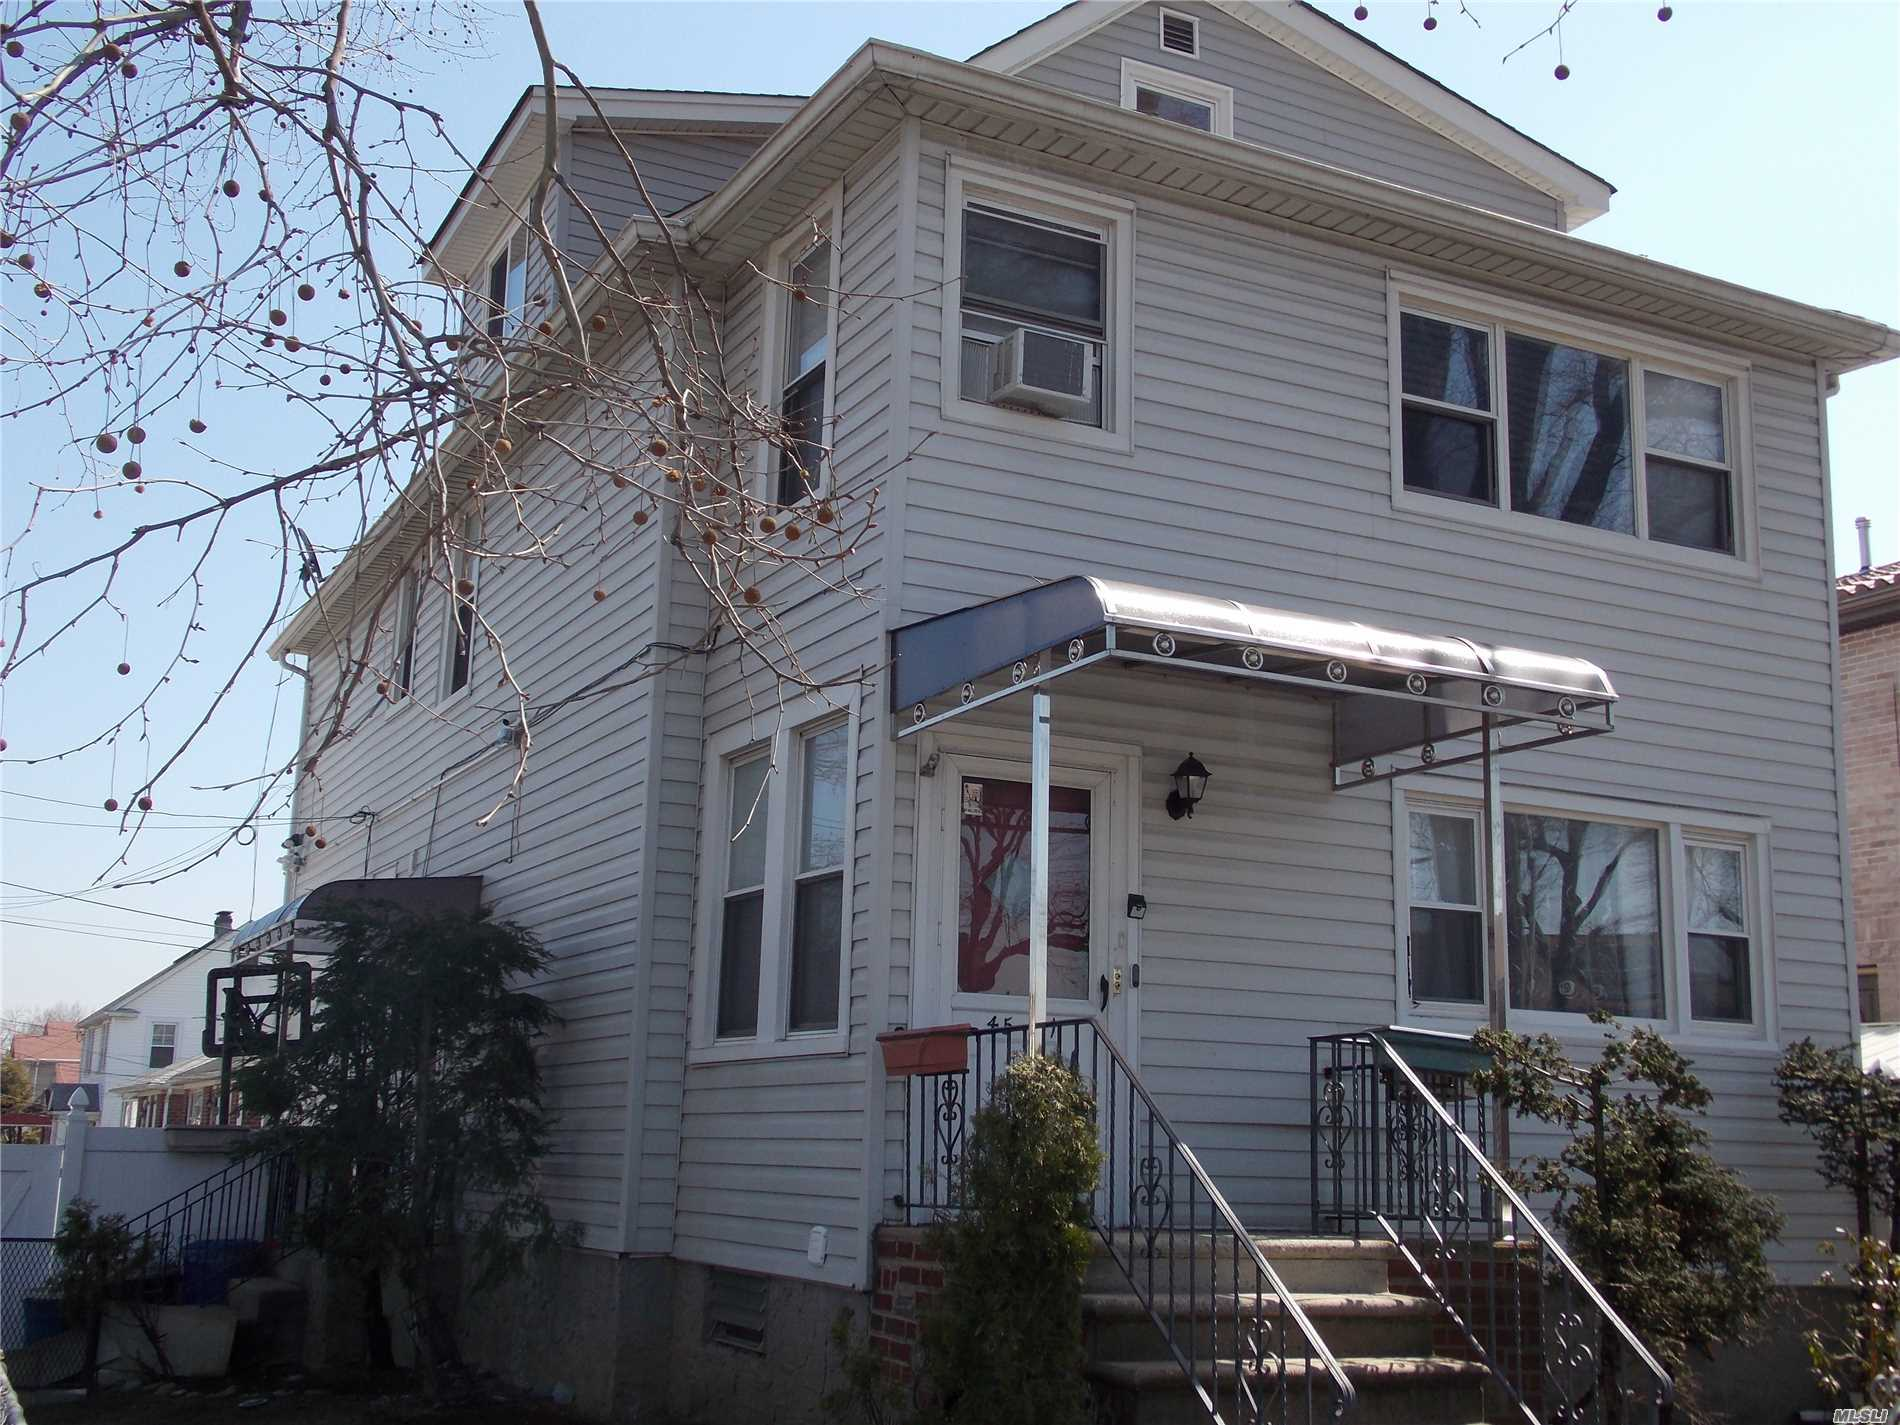 Detached legal 2 Family in SD#26 convenient location to all: LIRR, Bus (Q12, Q13, Q27, Q31, Q76), Highways & shopping. Totally updated in last 1-2 Years. New Boiler, New water tank, new electric, brand new 1 layer roof, siding, all windows, kitchen, 4 Gas heating zone, 3 electric meters, separate electric panel on each floor, fully finished large open loft in attic w/kitchen + bathroom, fully finished Bsmt. w/2 separate outside entrances + kitchen + bathroom. Pvt Driveway, Close to Northern Blvd.